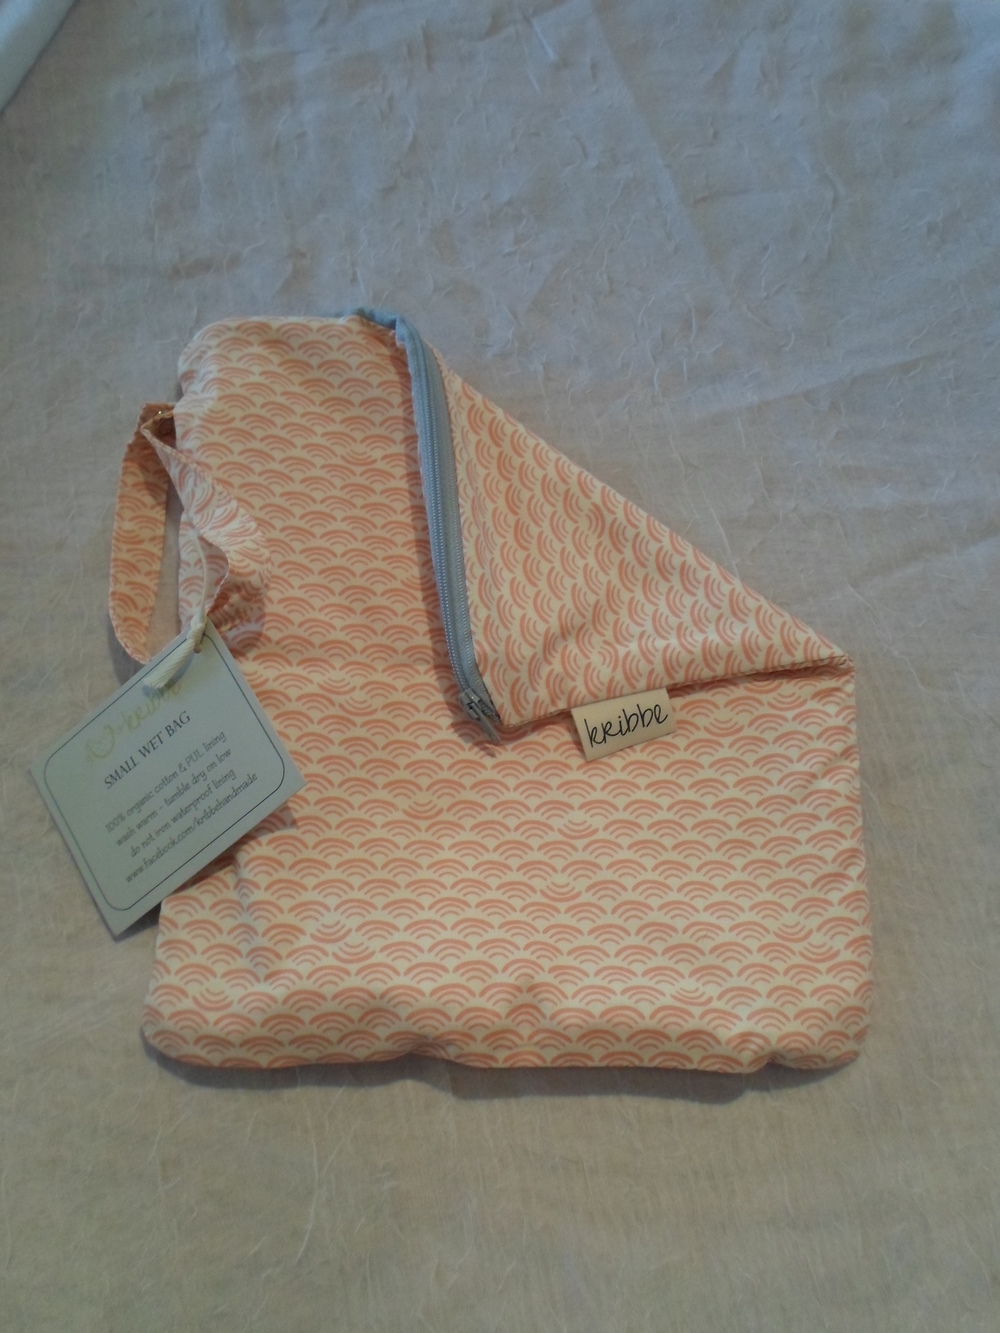 Kribbe Organic Travel Wet Bag size Small  Locally Handmade $18.00 Wants 1 PURCHASED